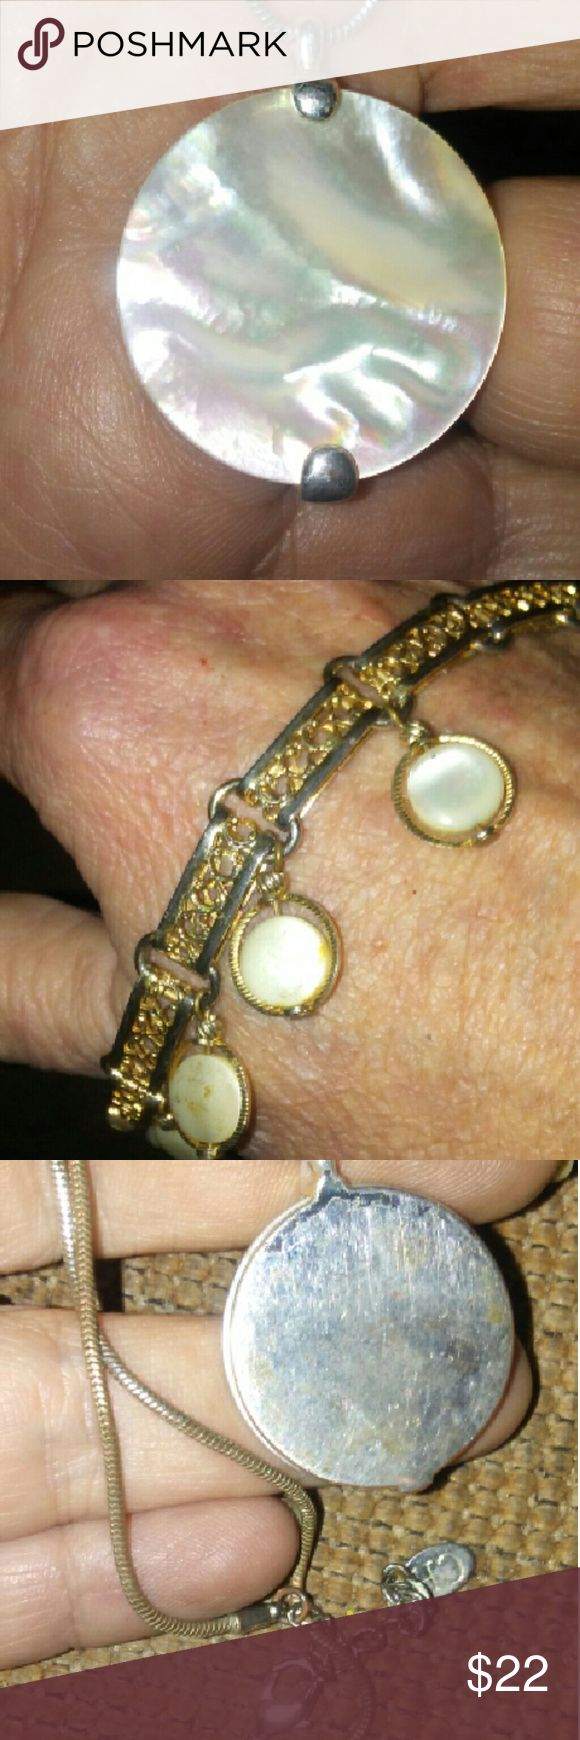 """MOP Necklace and vintage bracelet lot Georgeous mother of pearl circle 2"""" necklace on 13"""" chain marked CH. Back is shiny mirrored silver. Bracelet is vintage gild colored 8"""". There are 7 lil mop swivel circles on bracelet.. Both one price! Jewelry Necklaces"""